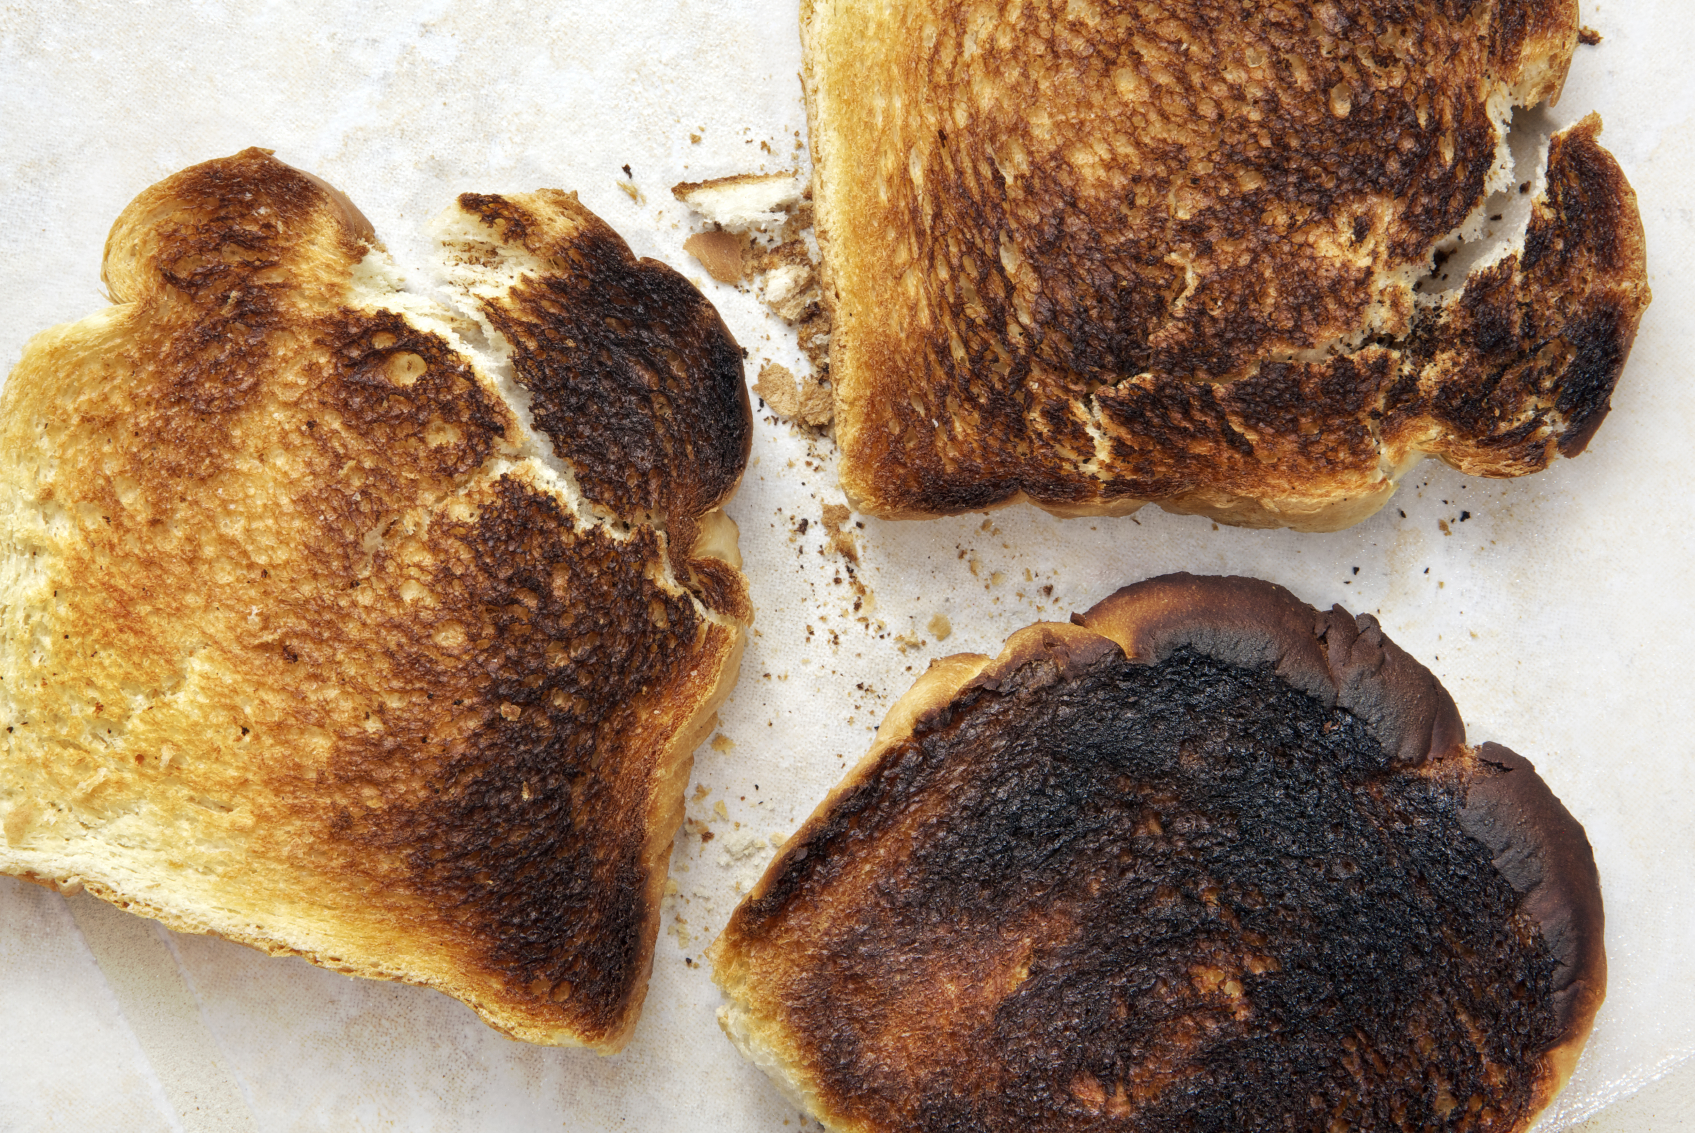 Burnt toast and other common food items contain a chemical that can give you cancer. Find out how to limit your risk.